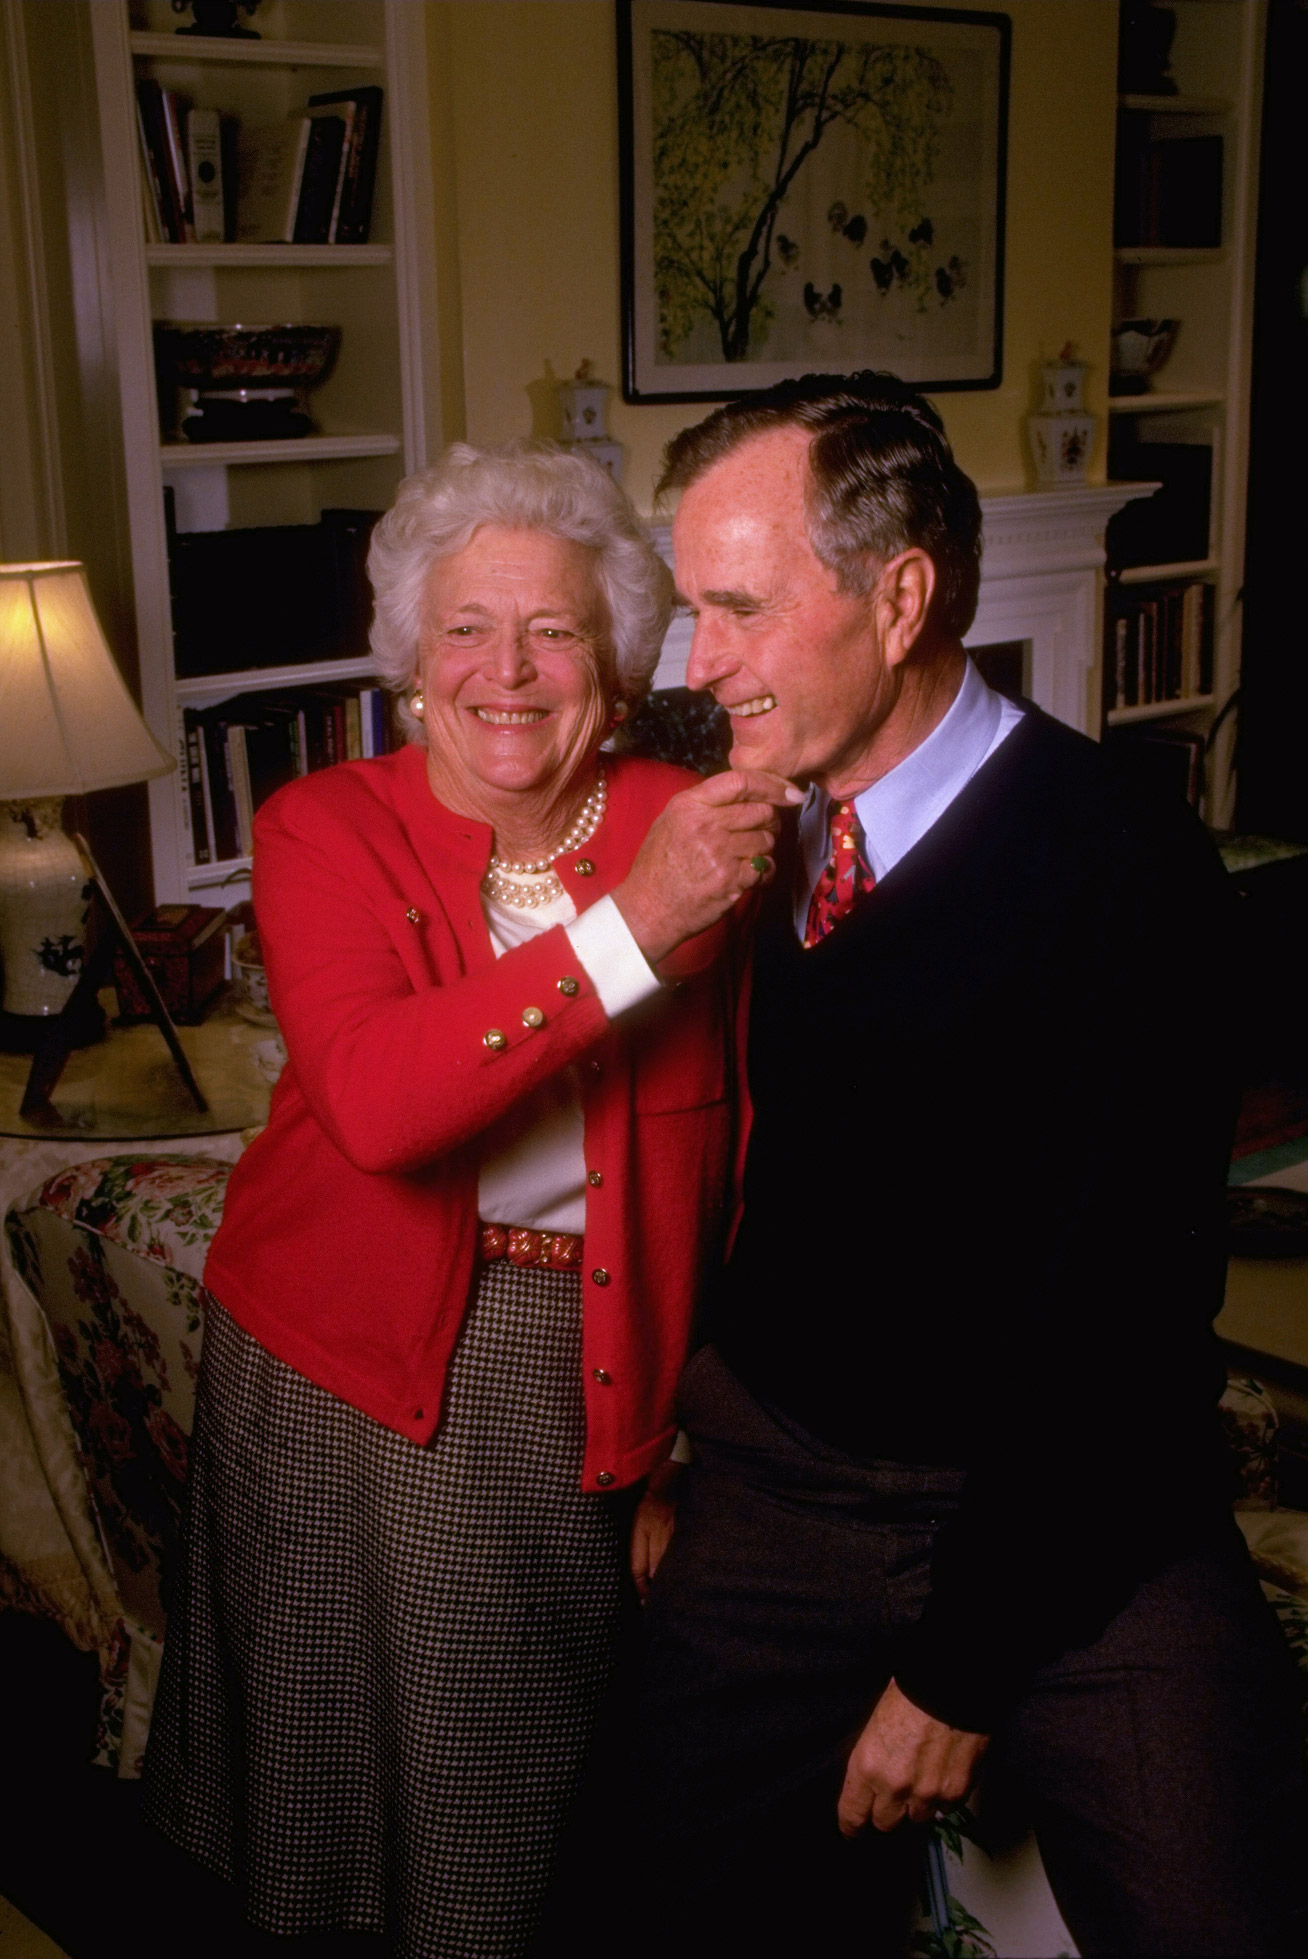 Former First Couple Barbara and George H.W. Bush enjoying life after presidency, in their living room at home in Houston, TX, 1994.